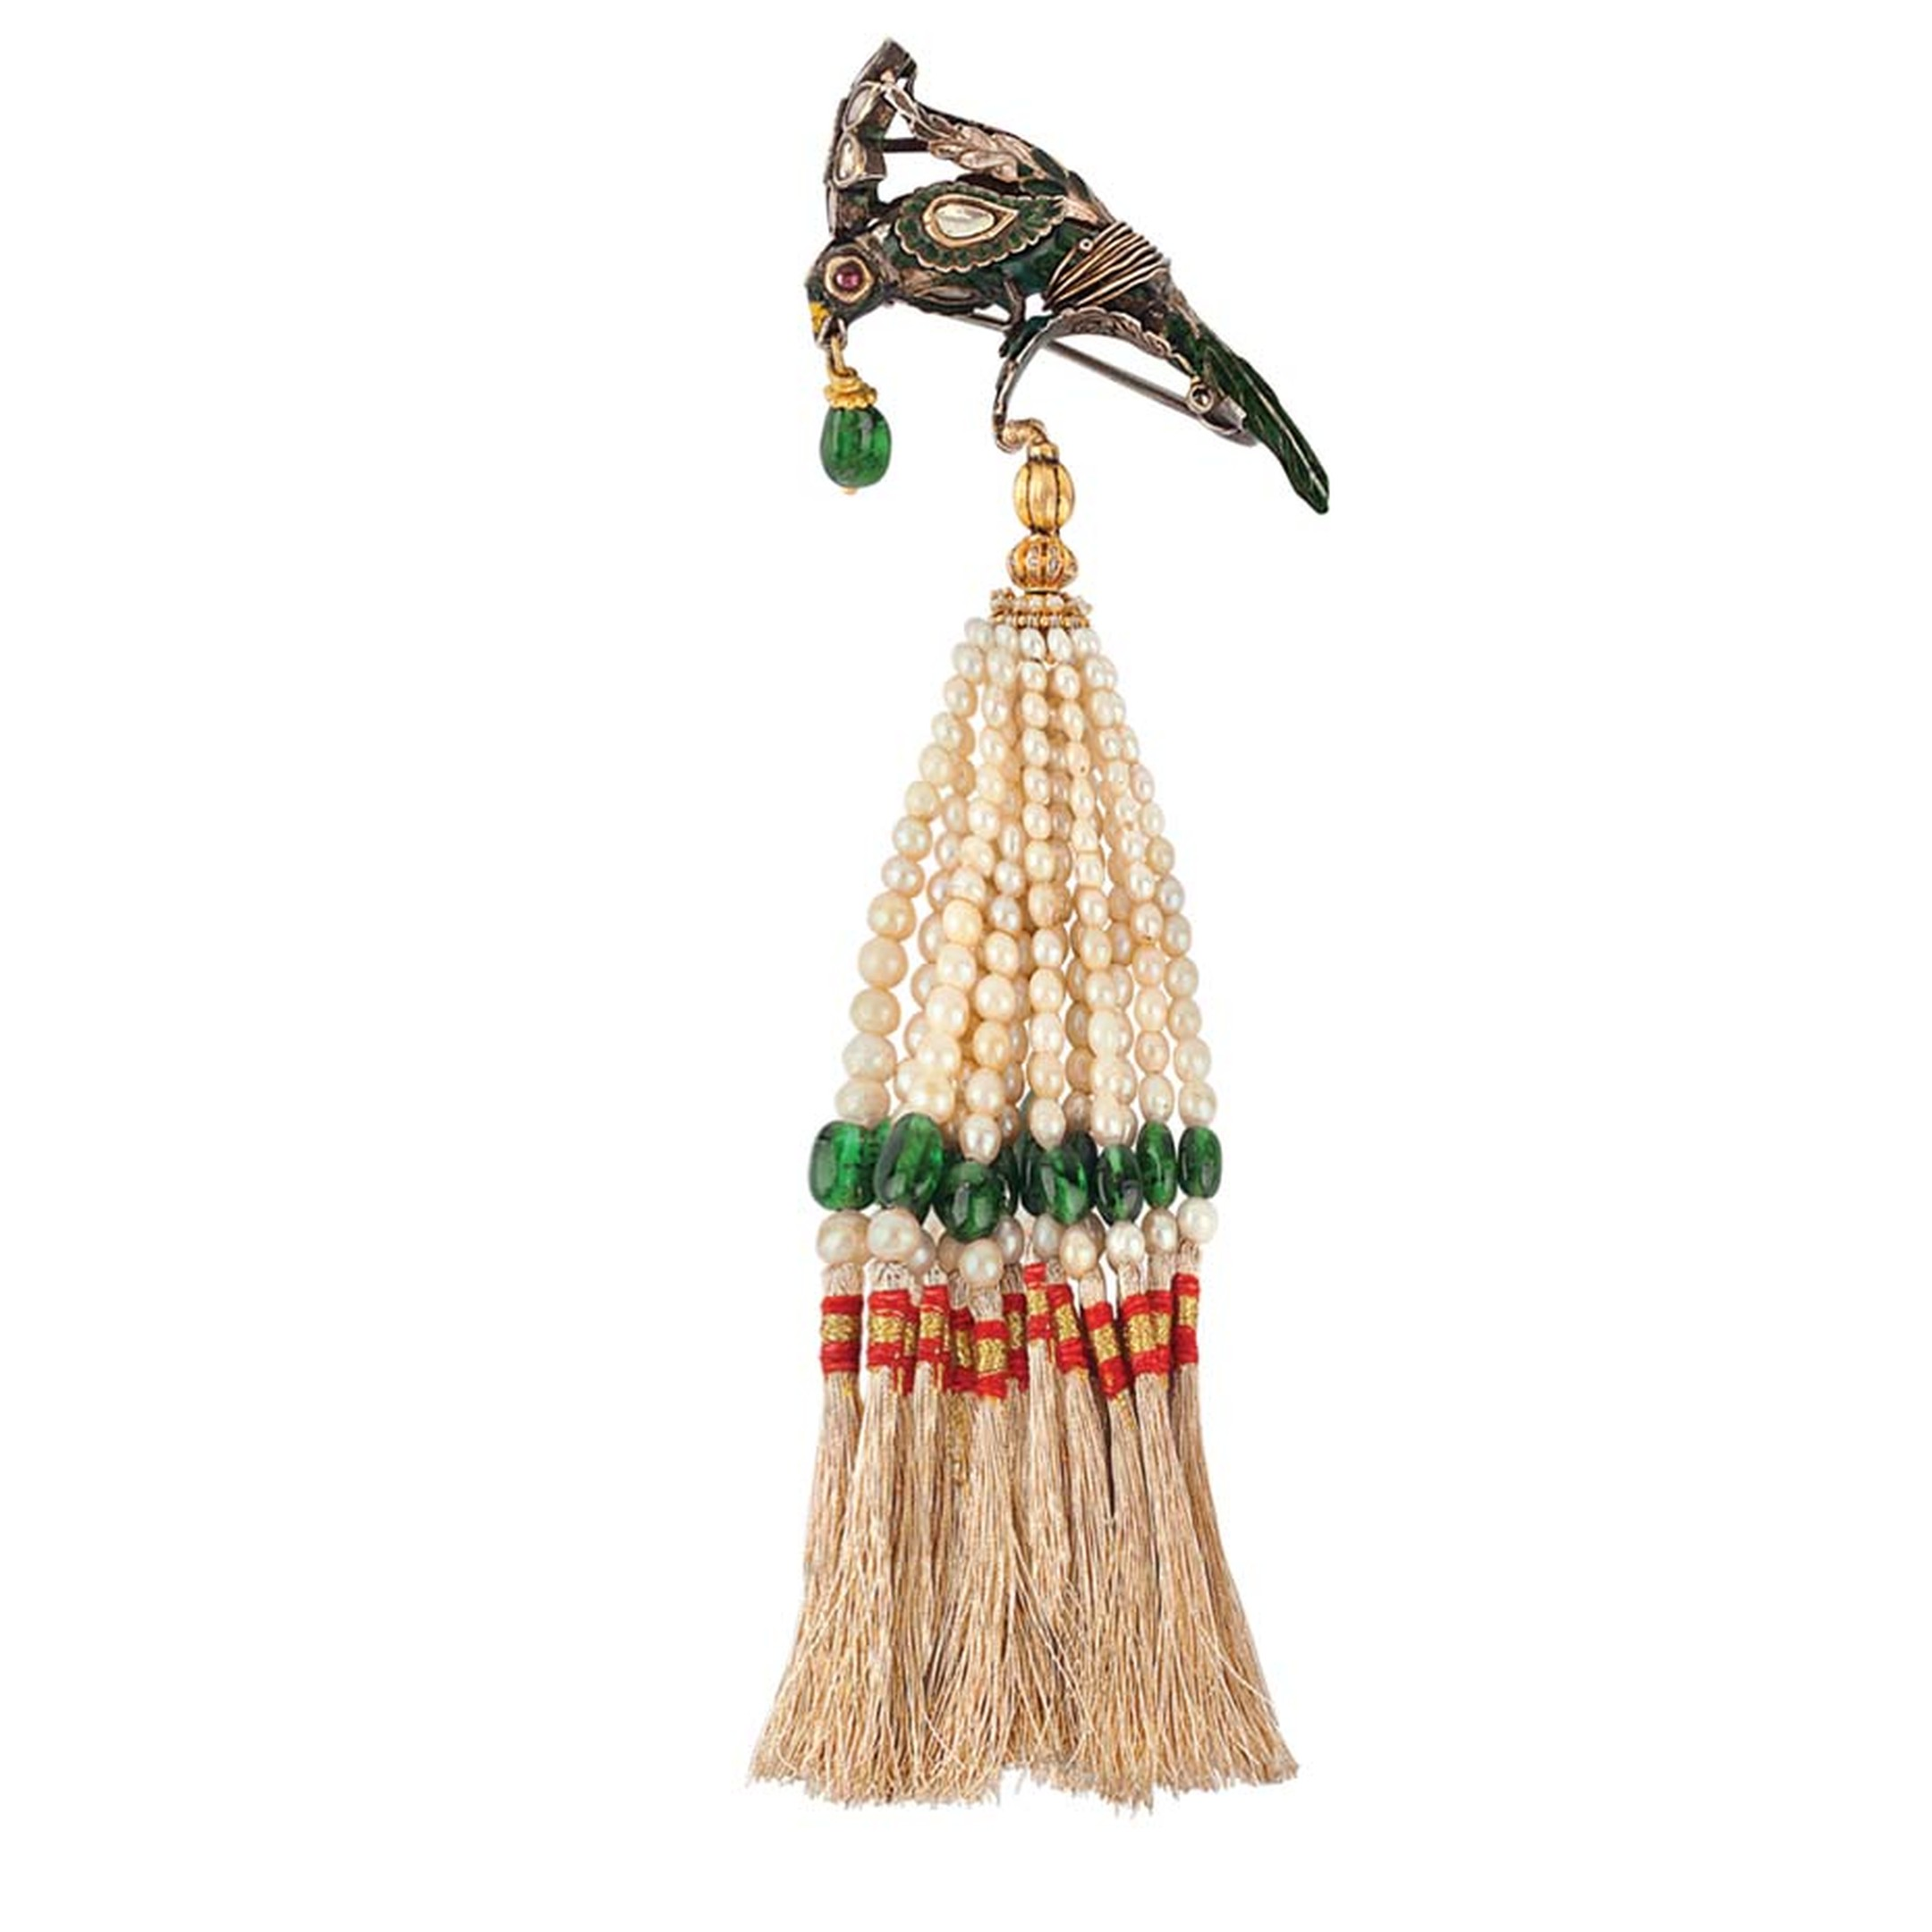 Golecha's Parrot brooch with pearl and emerald tassels.